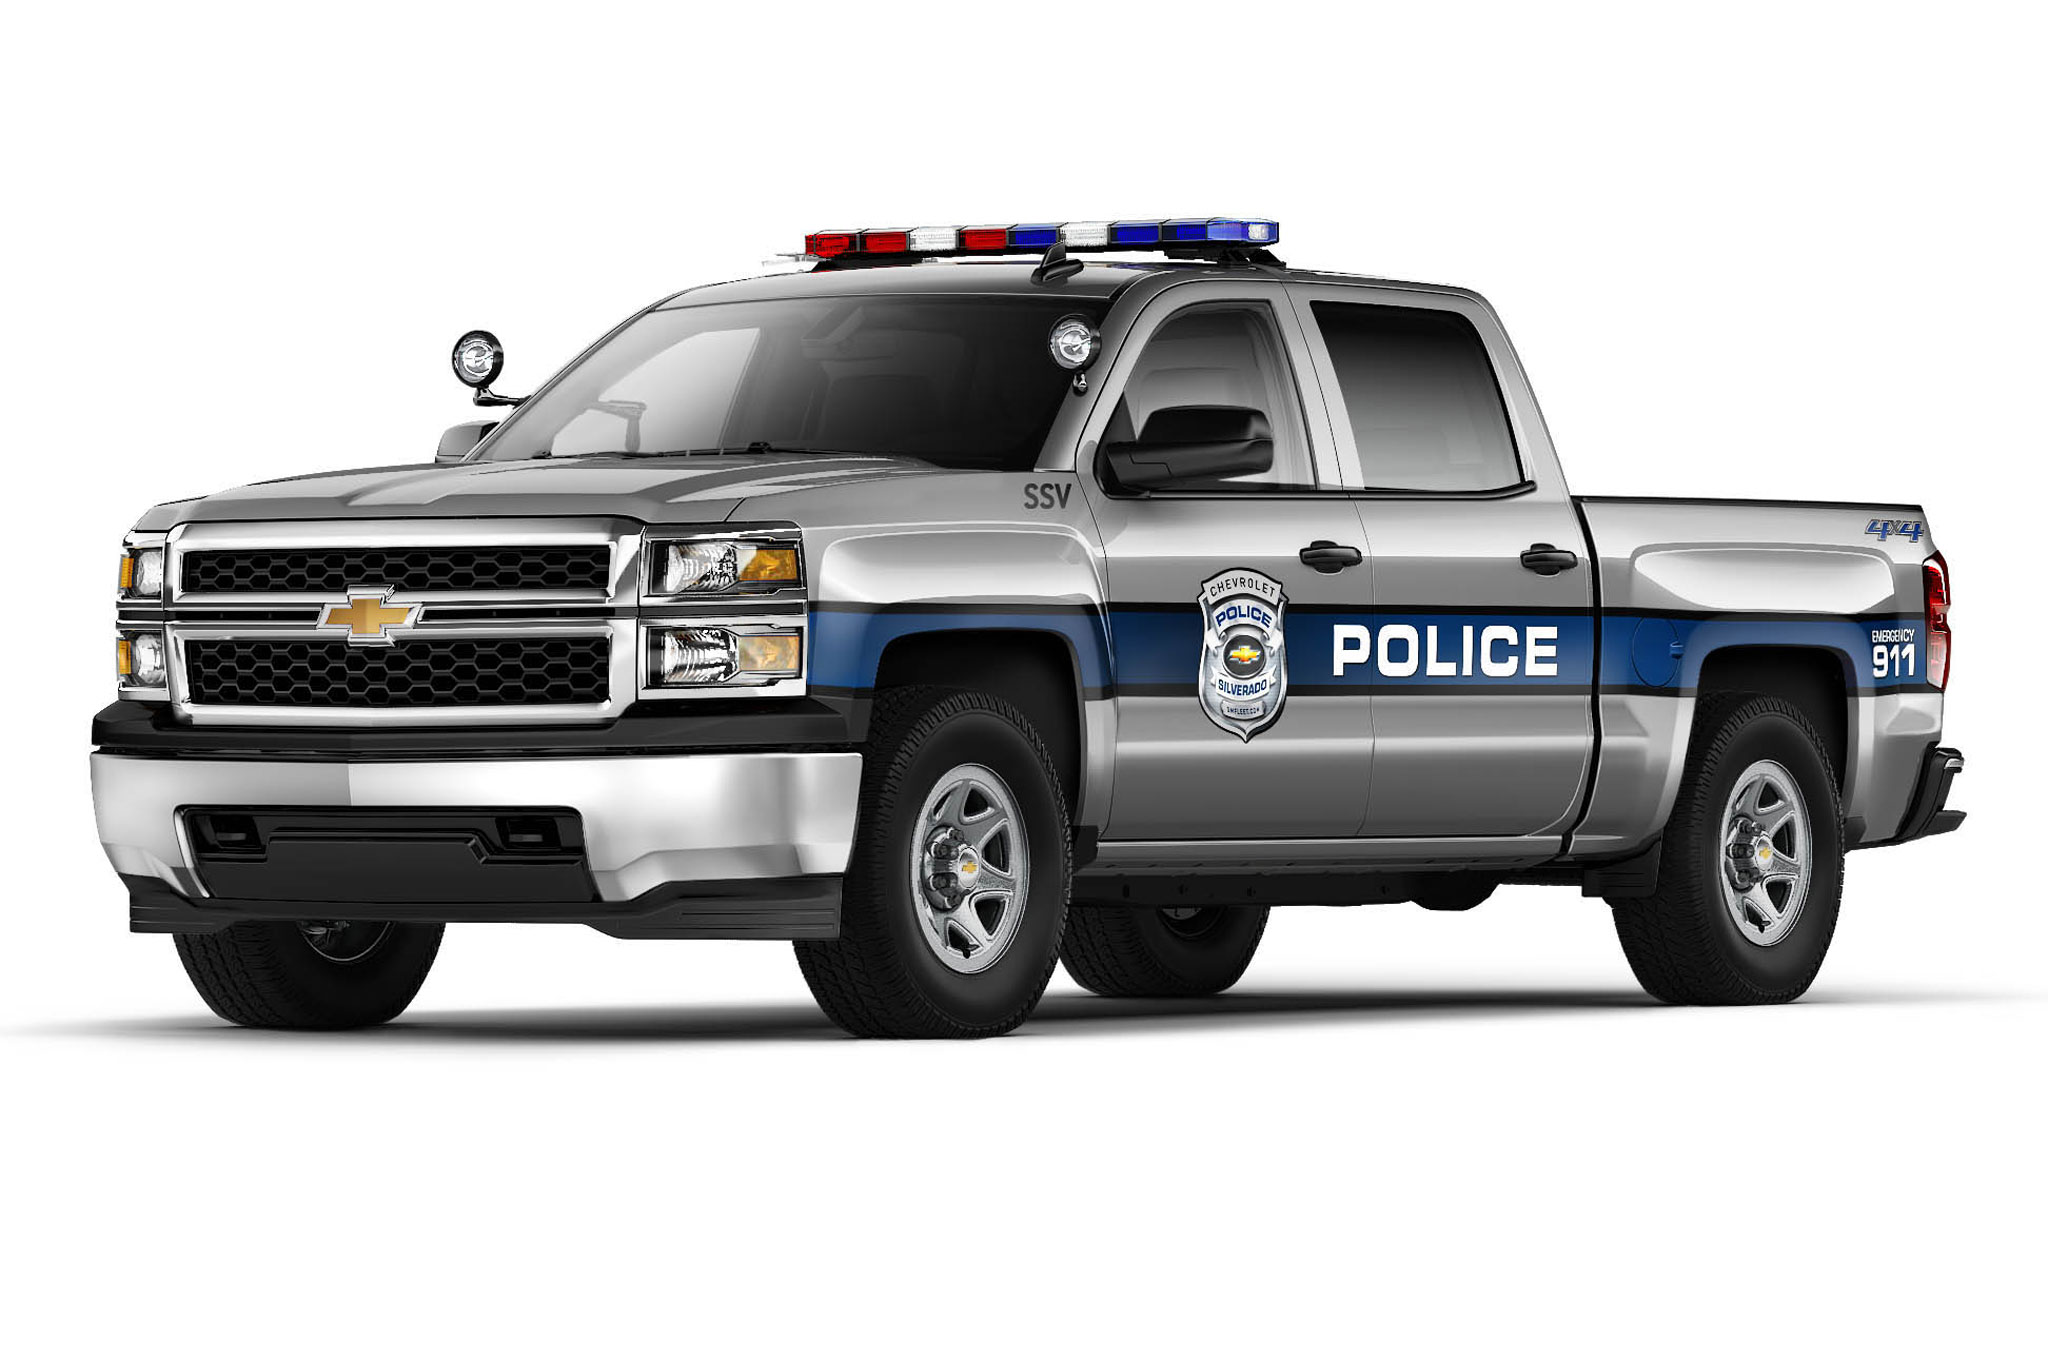 Fleets can choose to have all of their 2015 chevrolet silverado